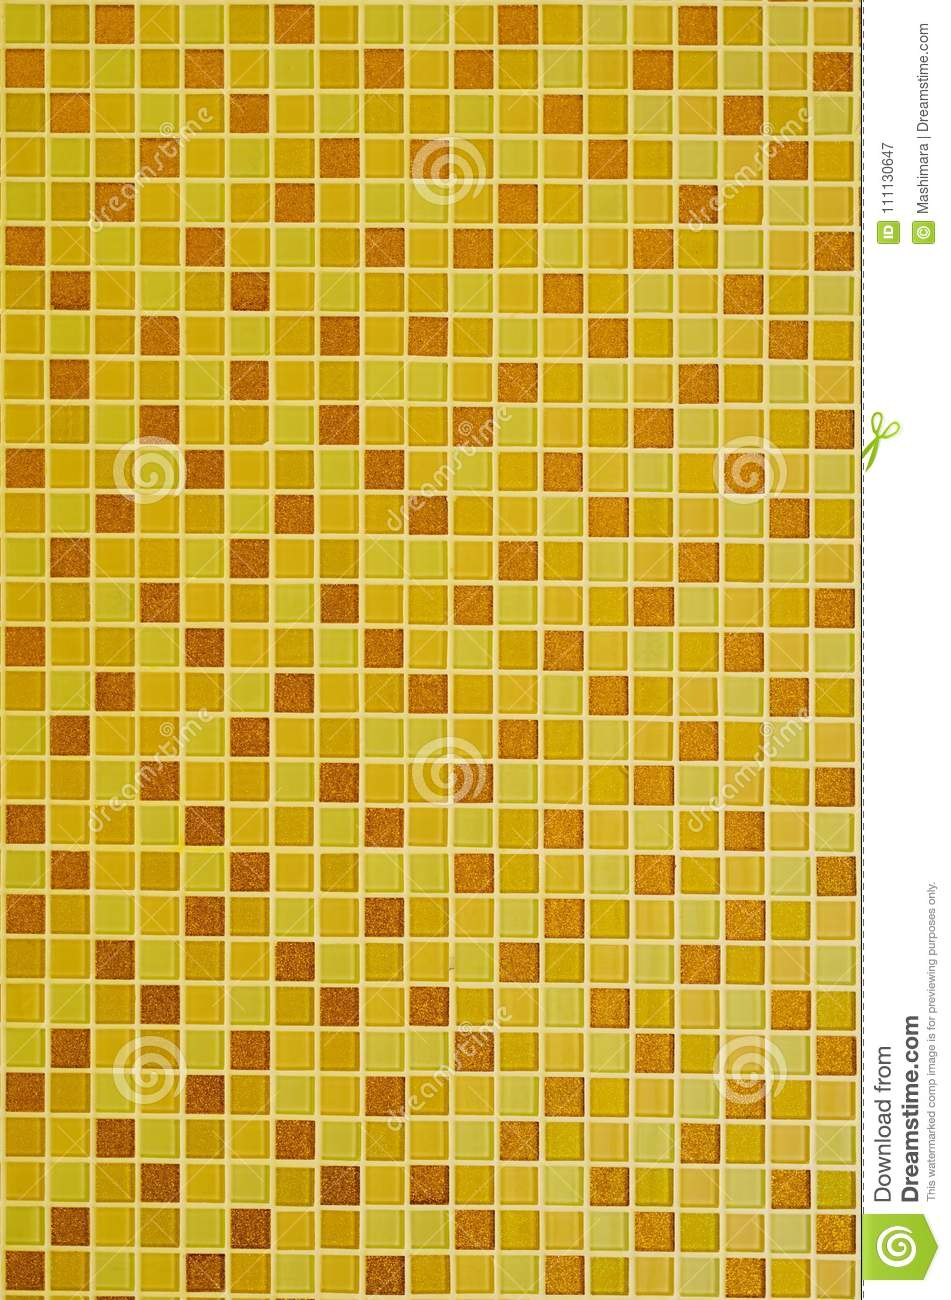 Background Of Yellow Golden Mosaic Tiles For Bathroom And Kitchen ...